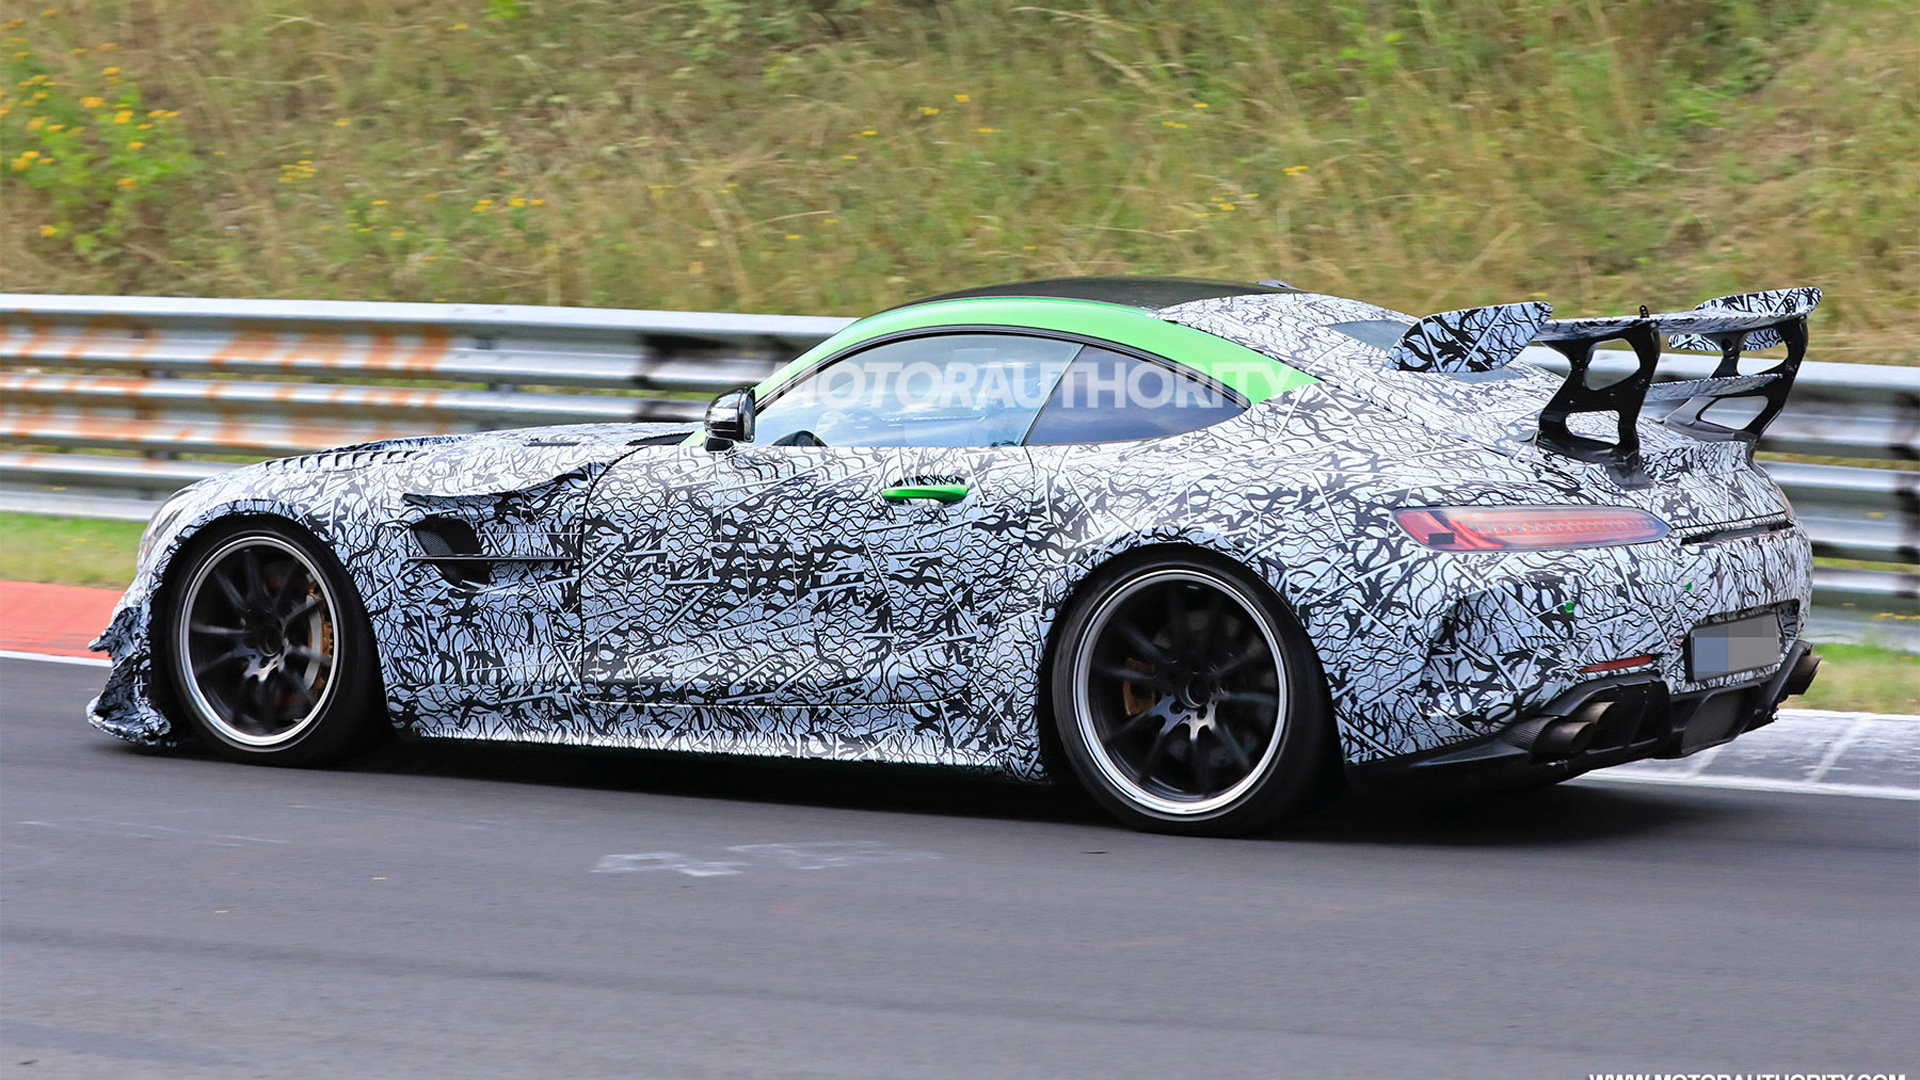 2021 Mercedes-AMG GT Black Series spy shots - Photo credit: S. Baldauf/SB-Medien